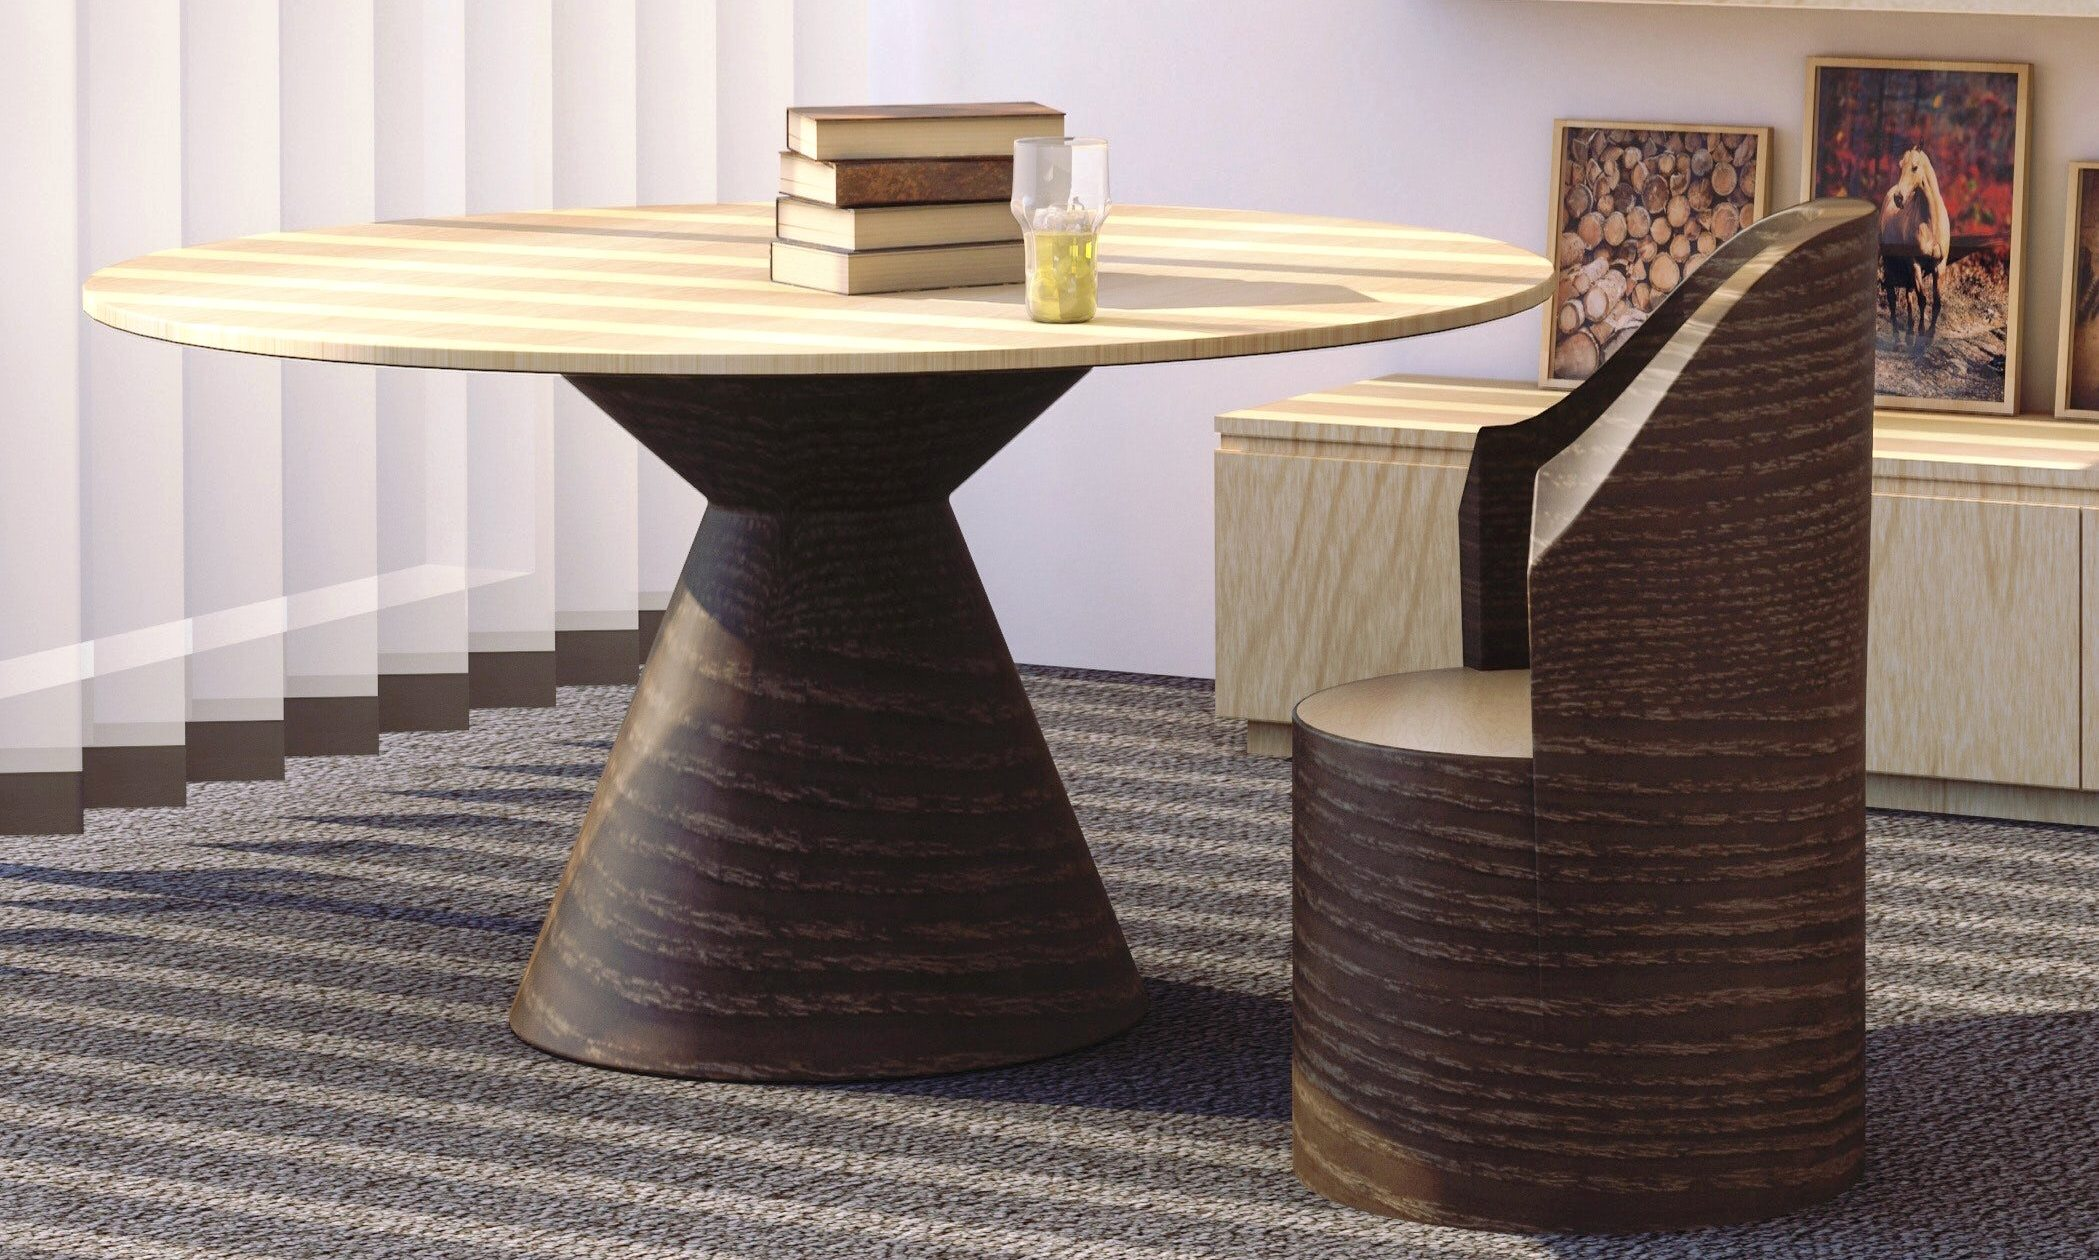 Shadow streaks resulting from vertical blinds give rhythm to a round wooden table and chair made of walnut with bold rings